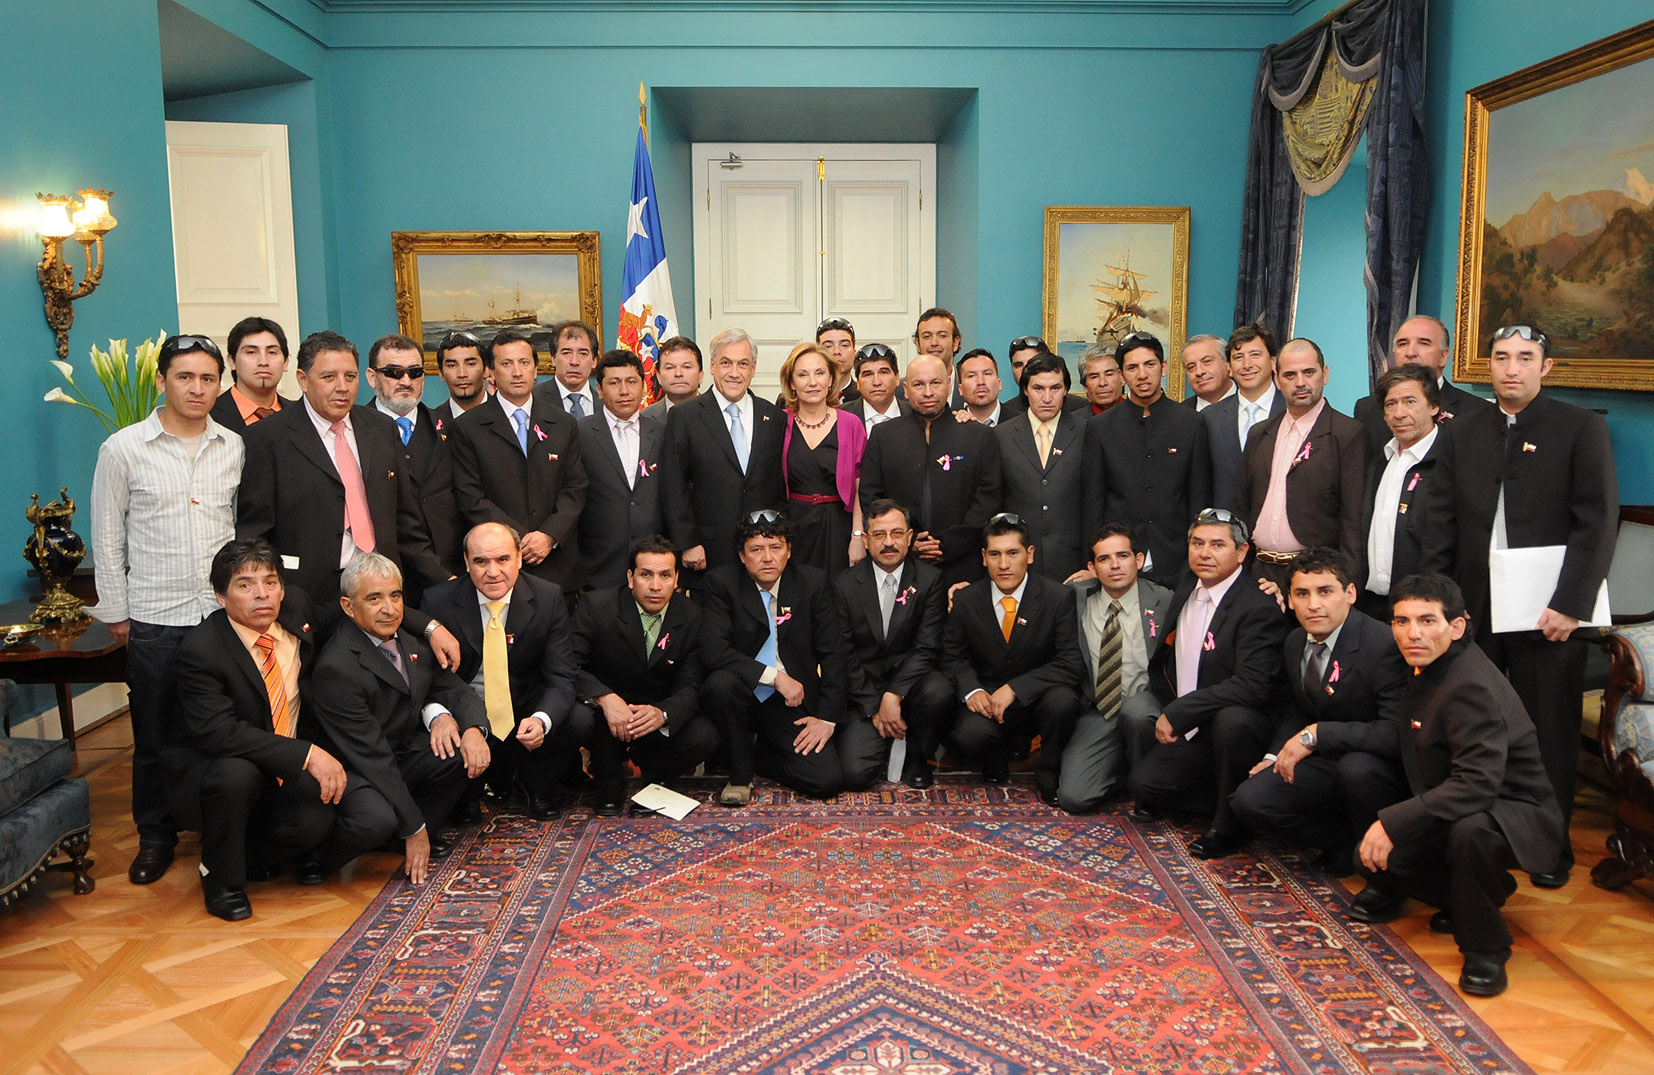 https://upload.wikimedia.org/wikipedia/commons/c/c7/Mina_San_Jos%C3%A9_-_Los_33_in_the_Blue_Room_at_Presidential_Palace_with_President_and_First_Lady_-_Gobierno_de_Chile.jpg